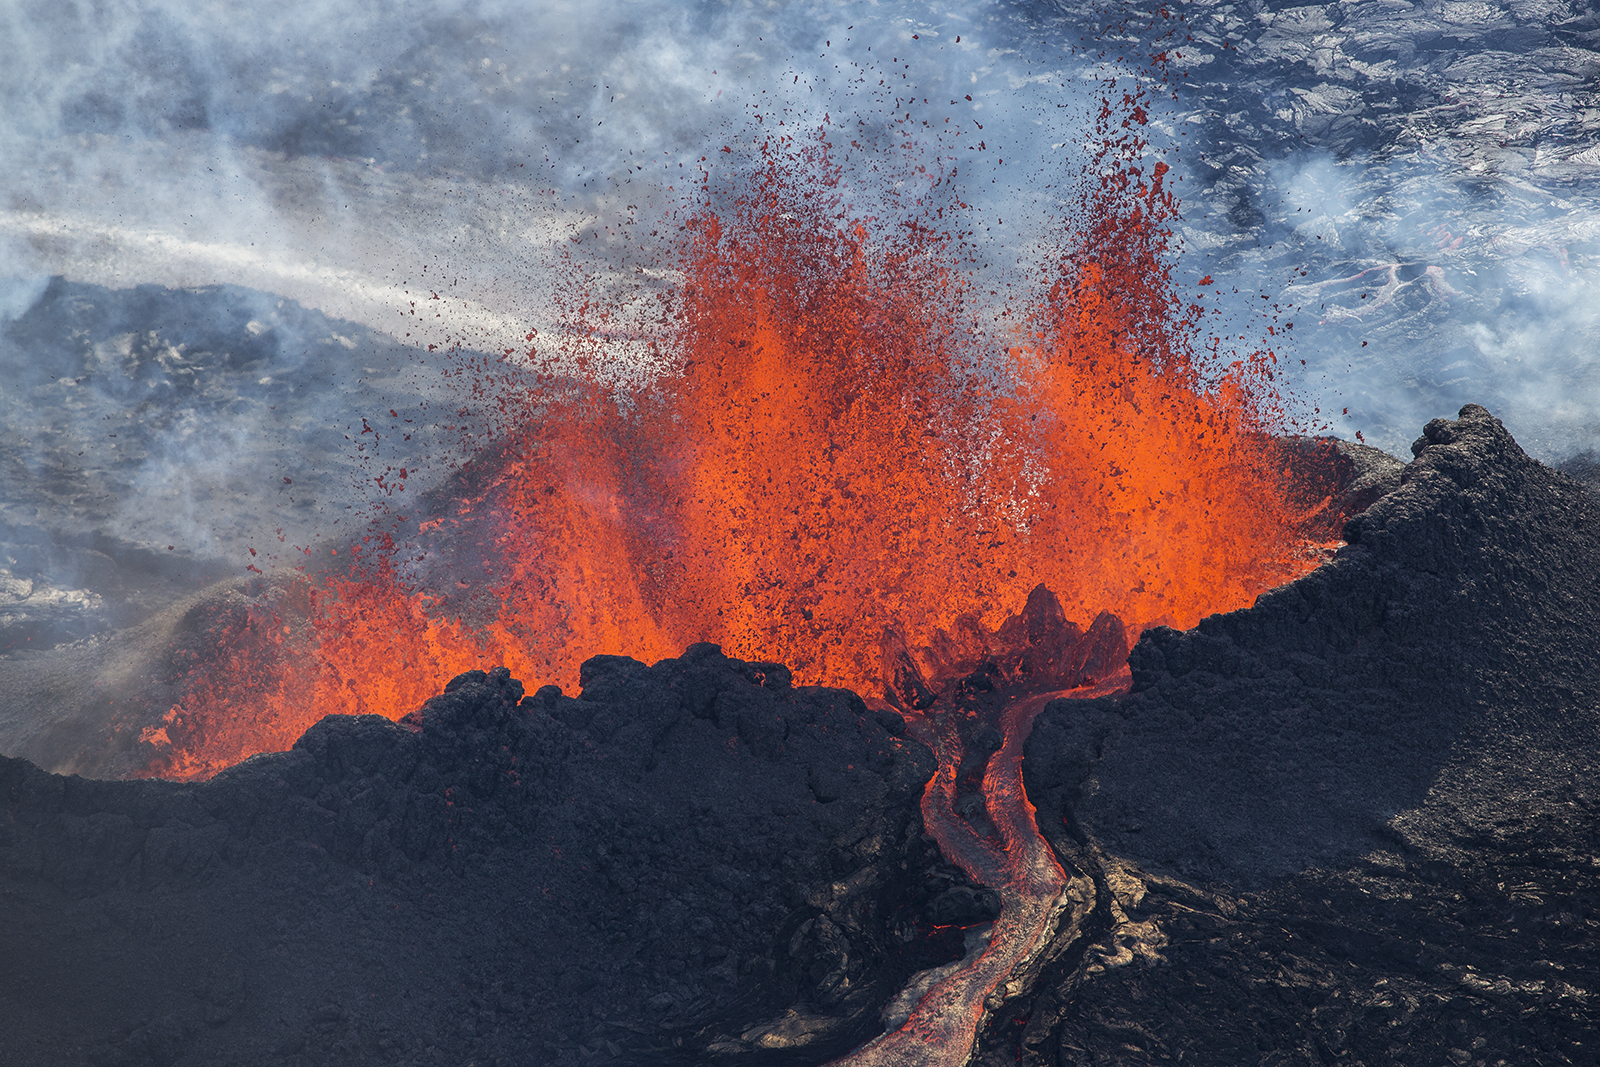 15 Incredible Photographs of the Holuhraun Volcano in Iceland